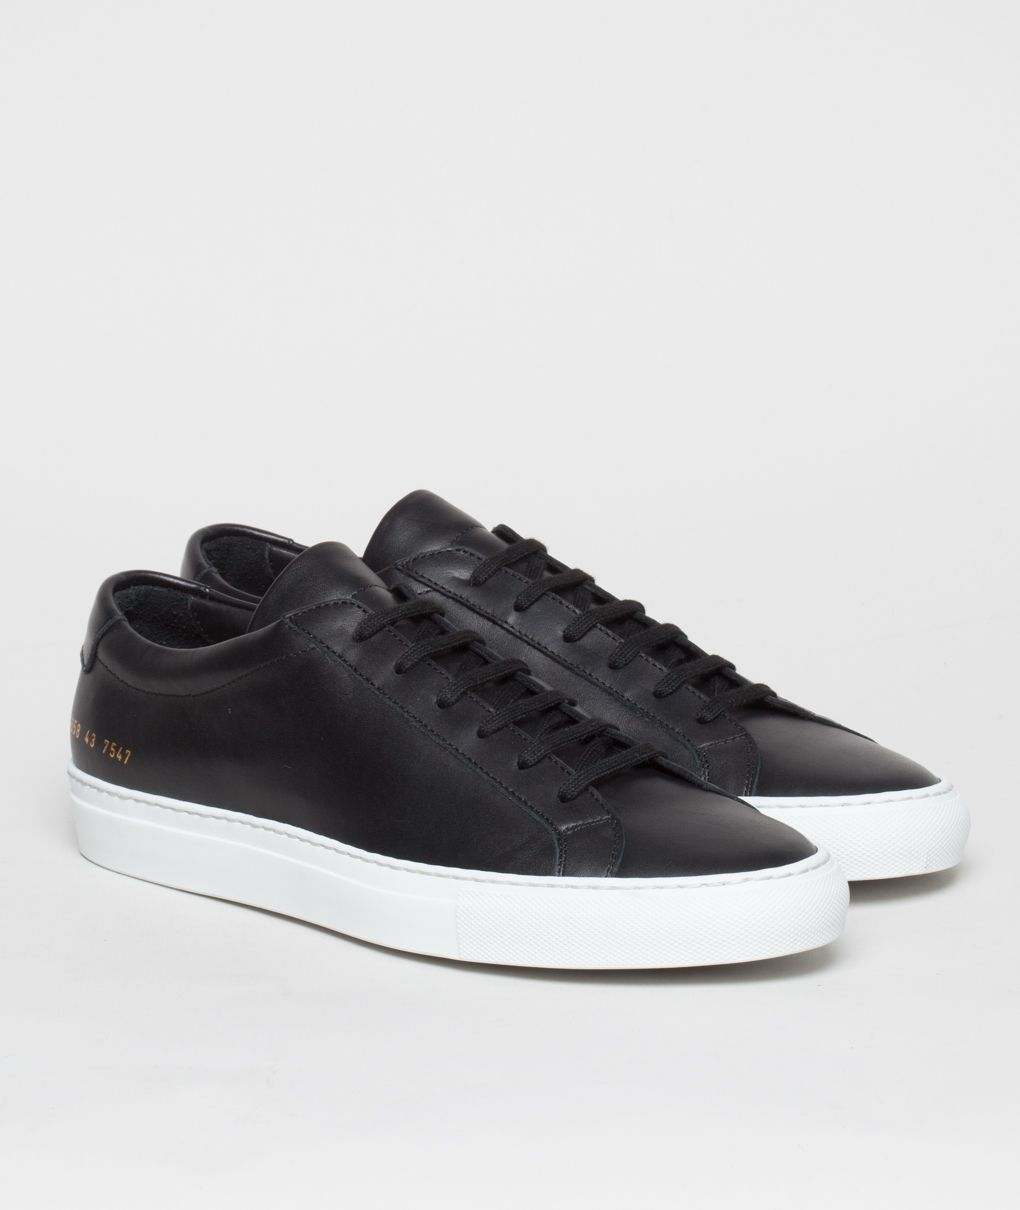 44f4883298703 Common Projects Achilles Low Black White